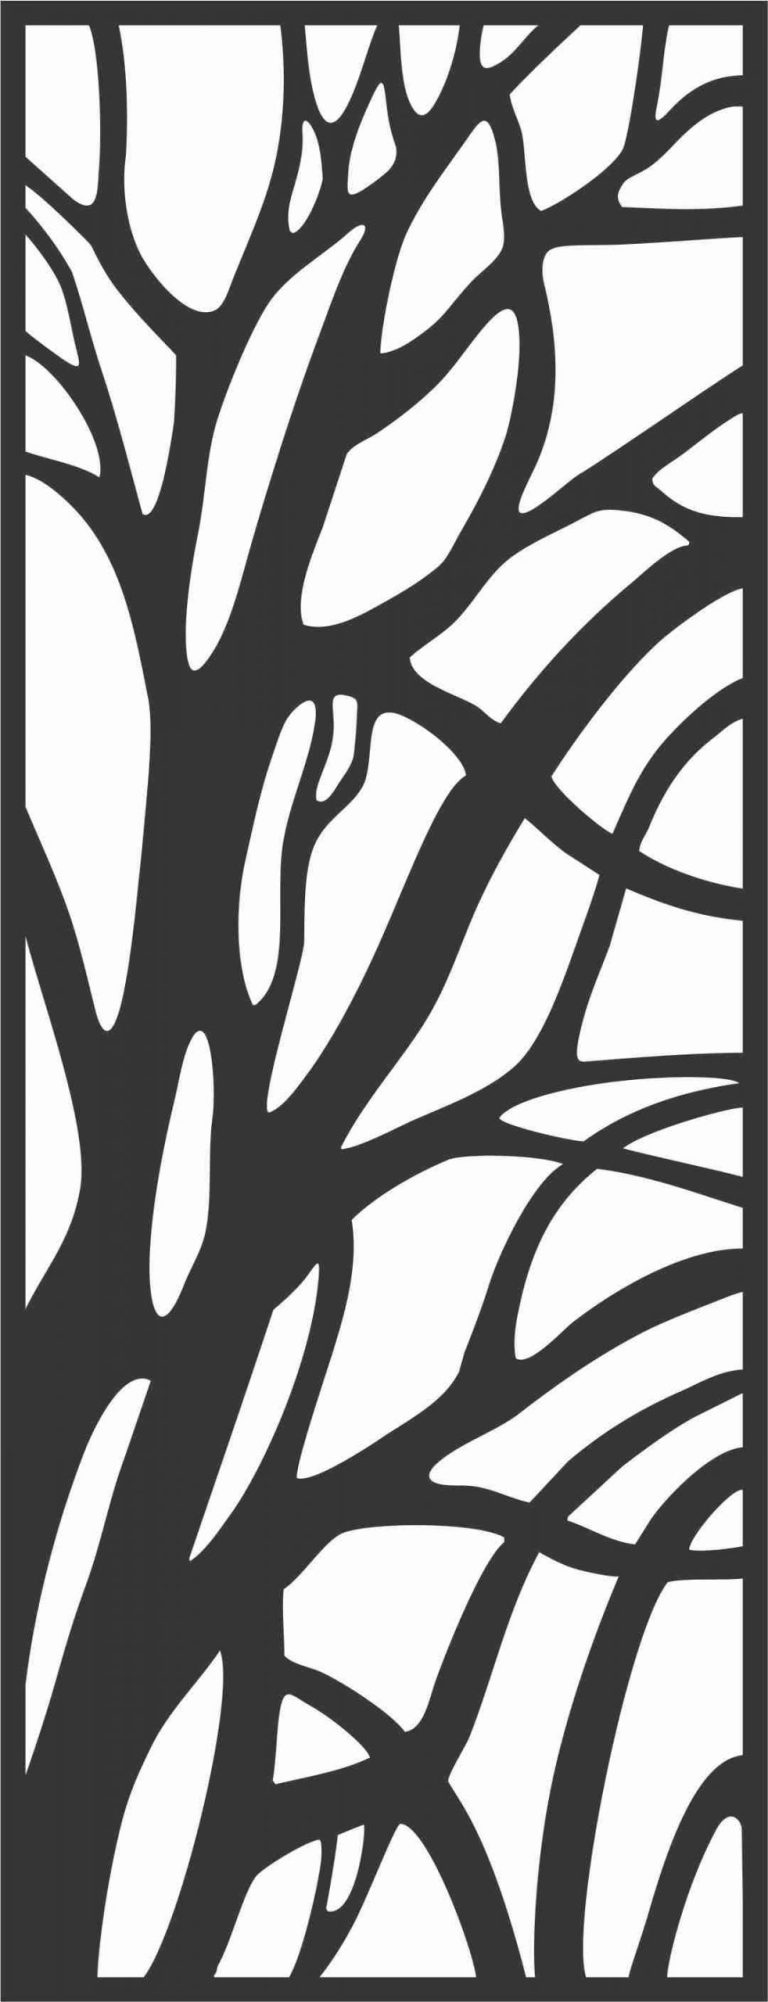 Floral Screen Patterns Design 47 Free DXF File